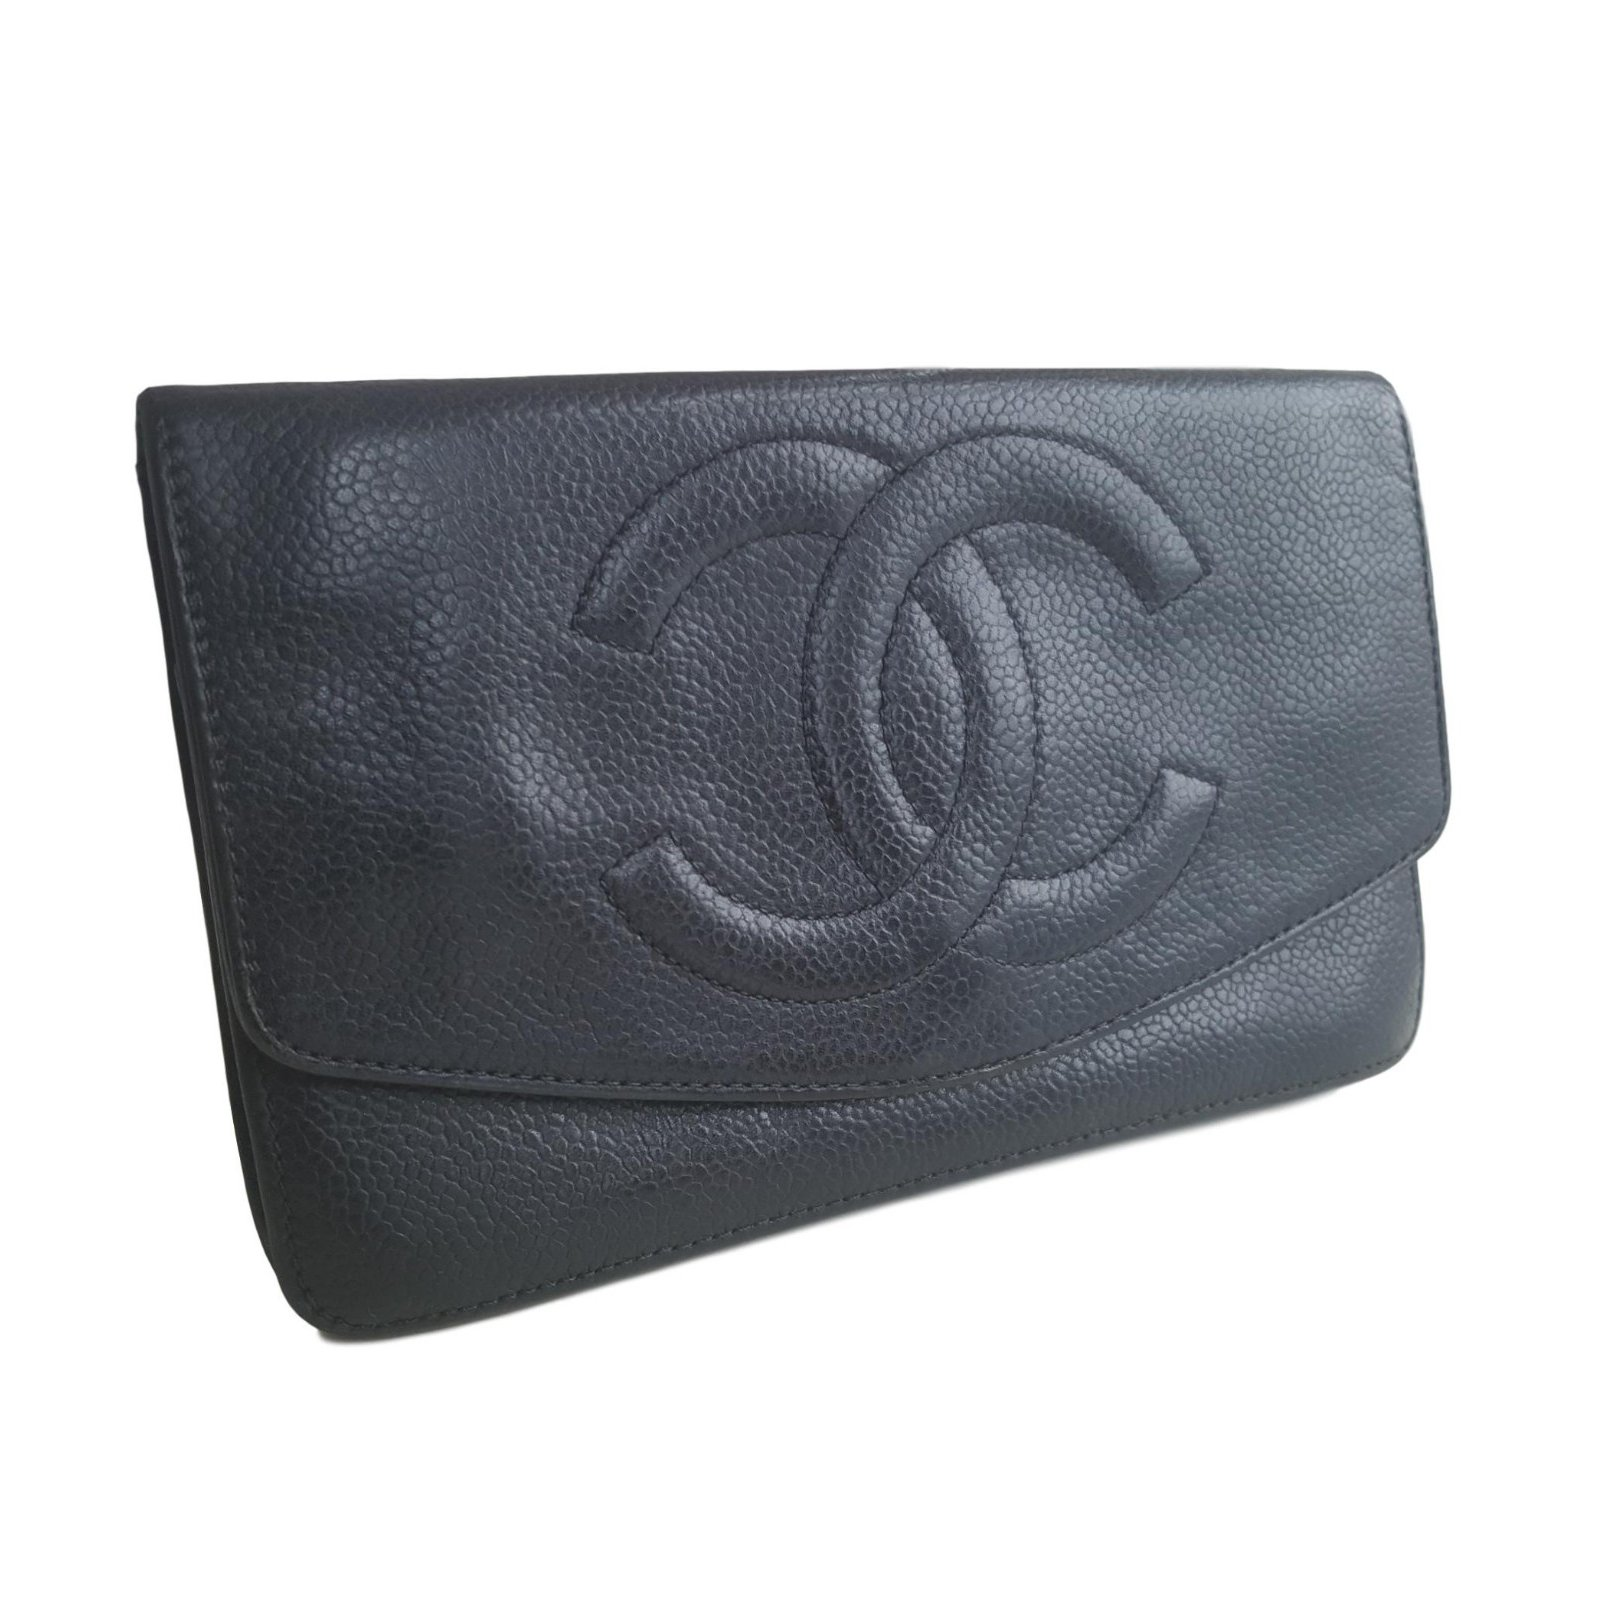 eee0c2b16f1d8f Chanel Wallets Wallets Leather Black ref.60702 - Joli Closet